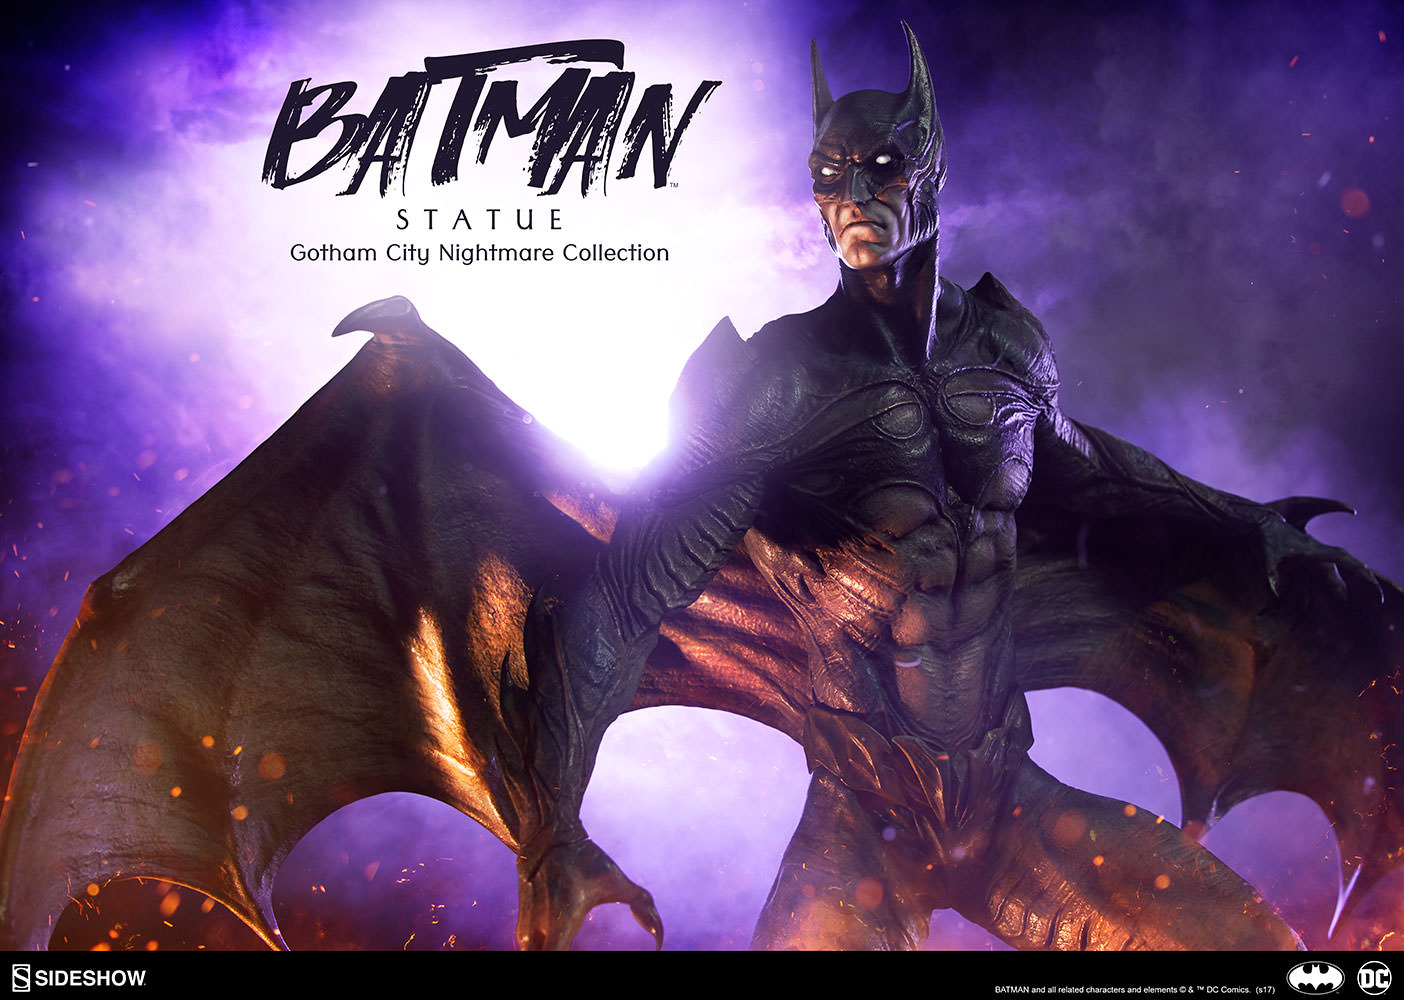 Pre-order Sideshow DC Comics Gotham City Nightmare Batman Statue